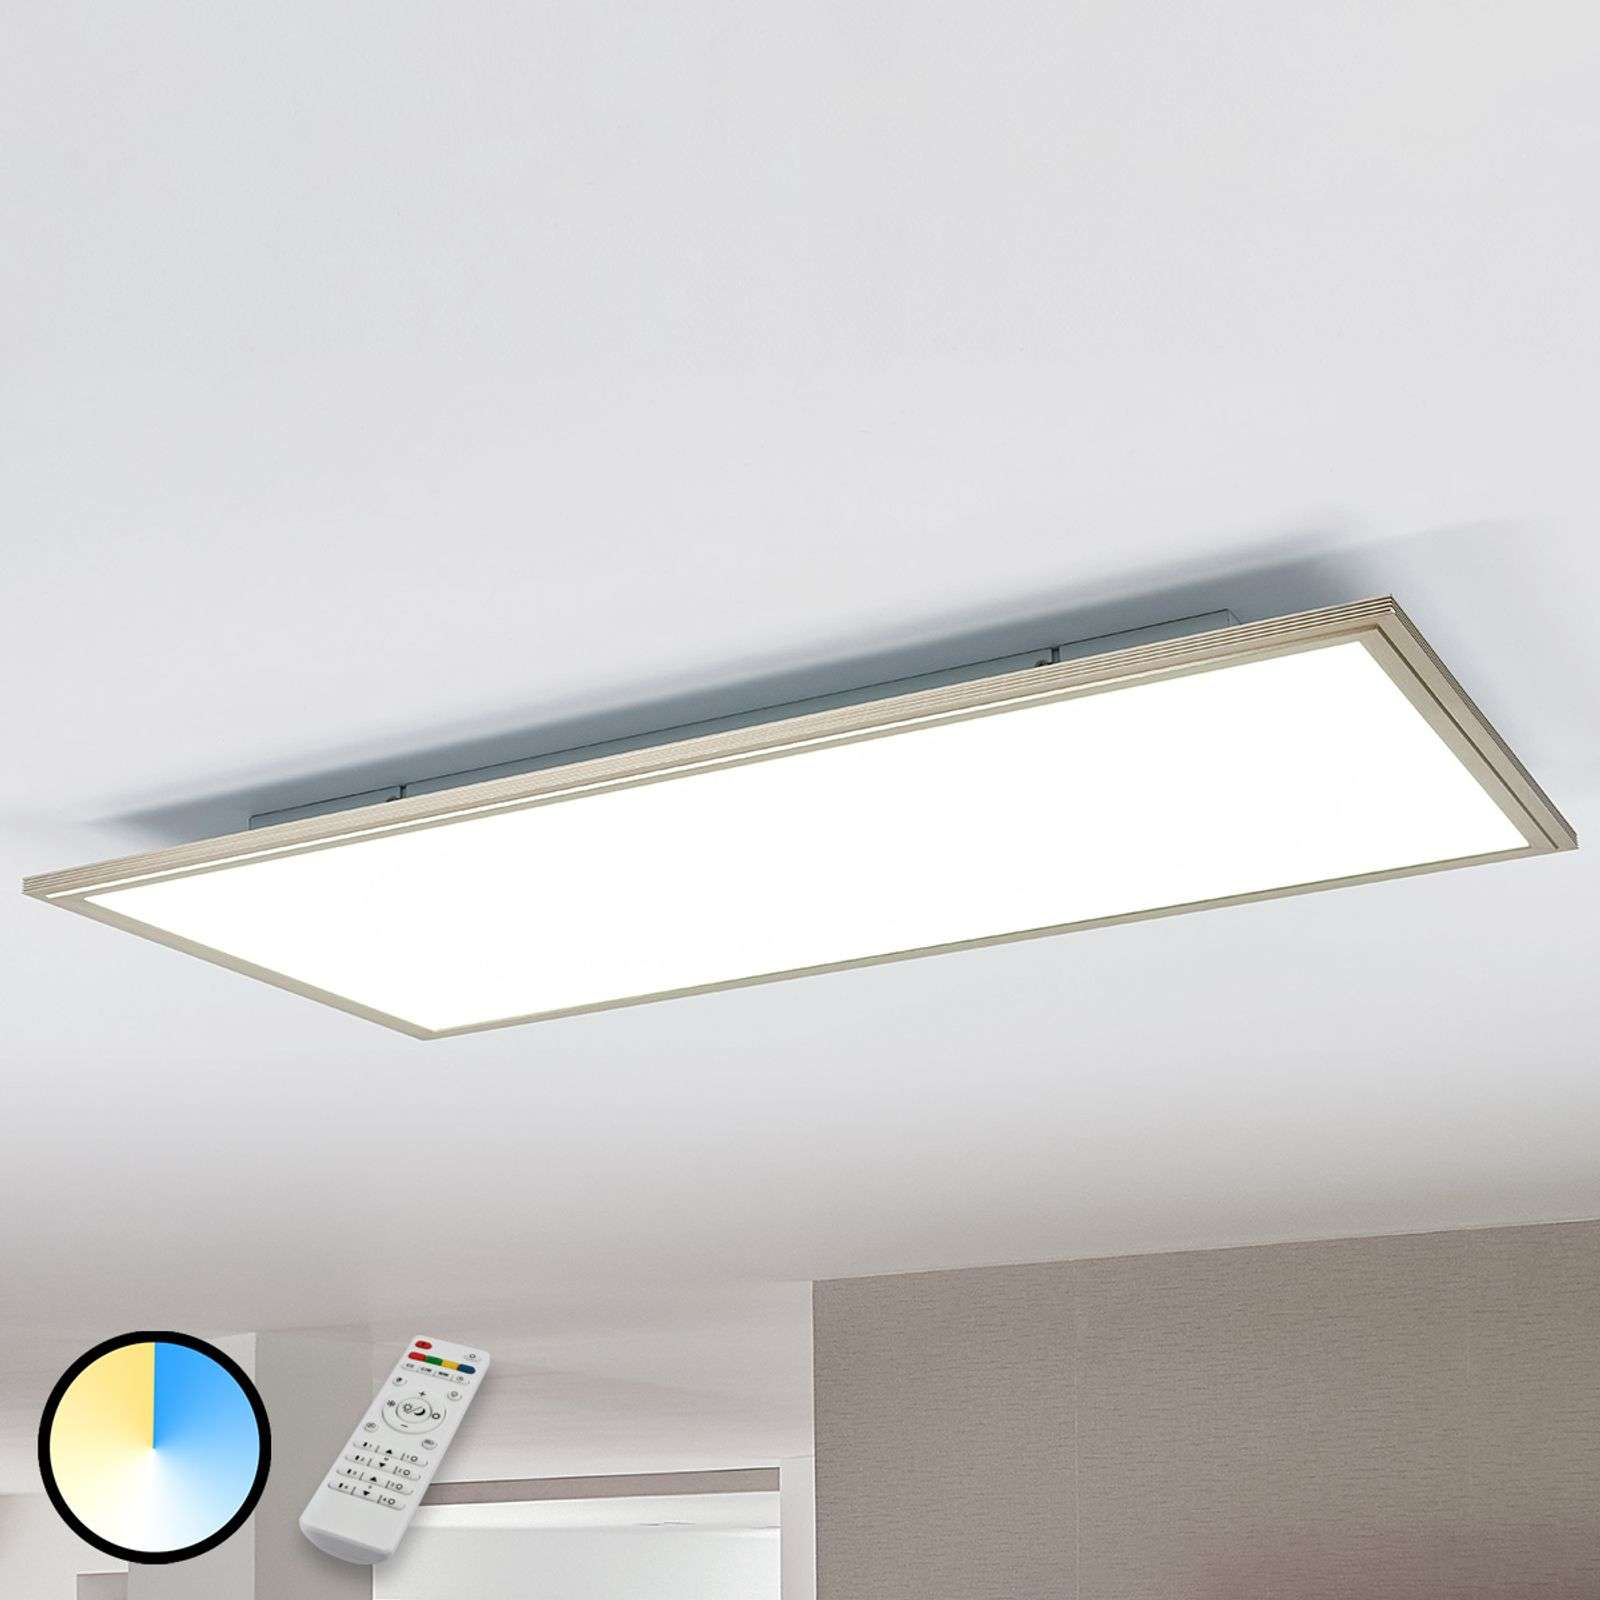 Plafonnier LED Corinna dimmable, 2700-6200K